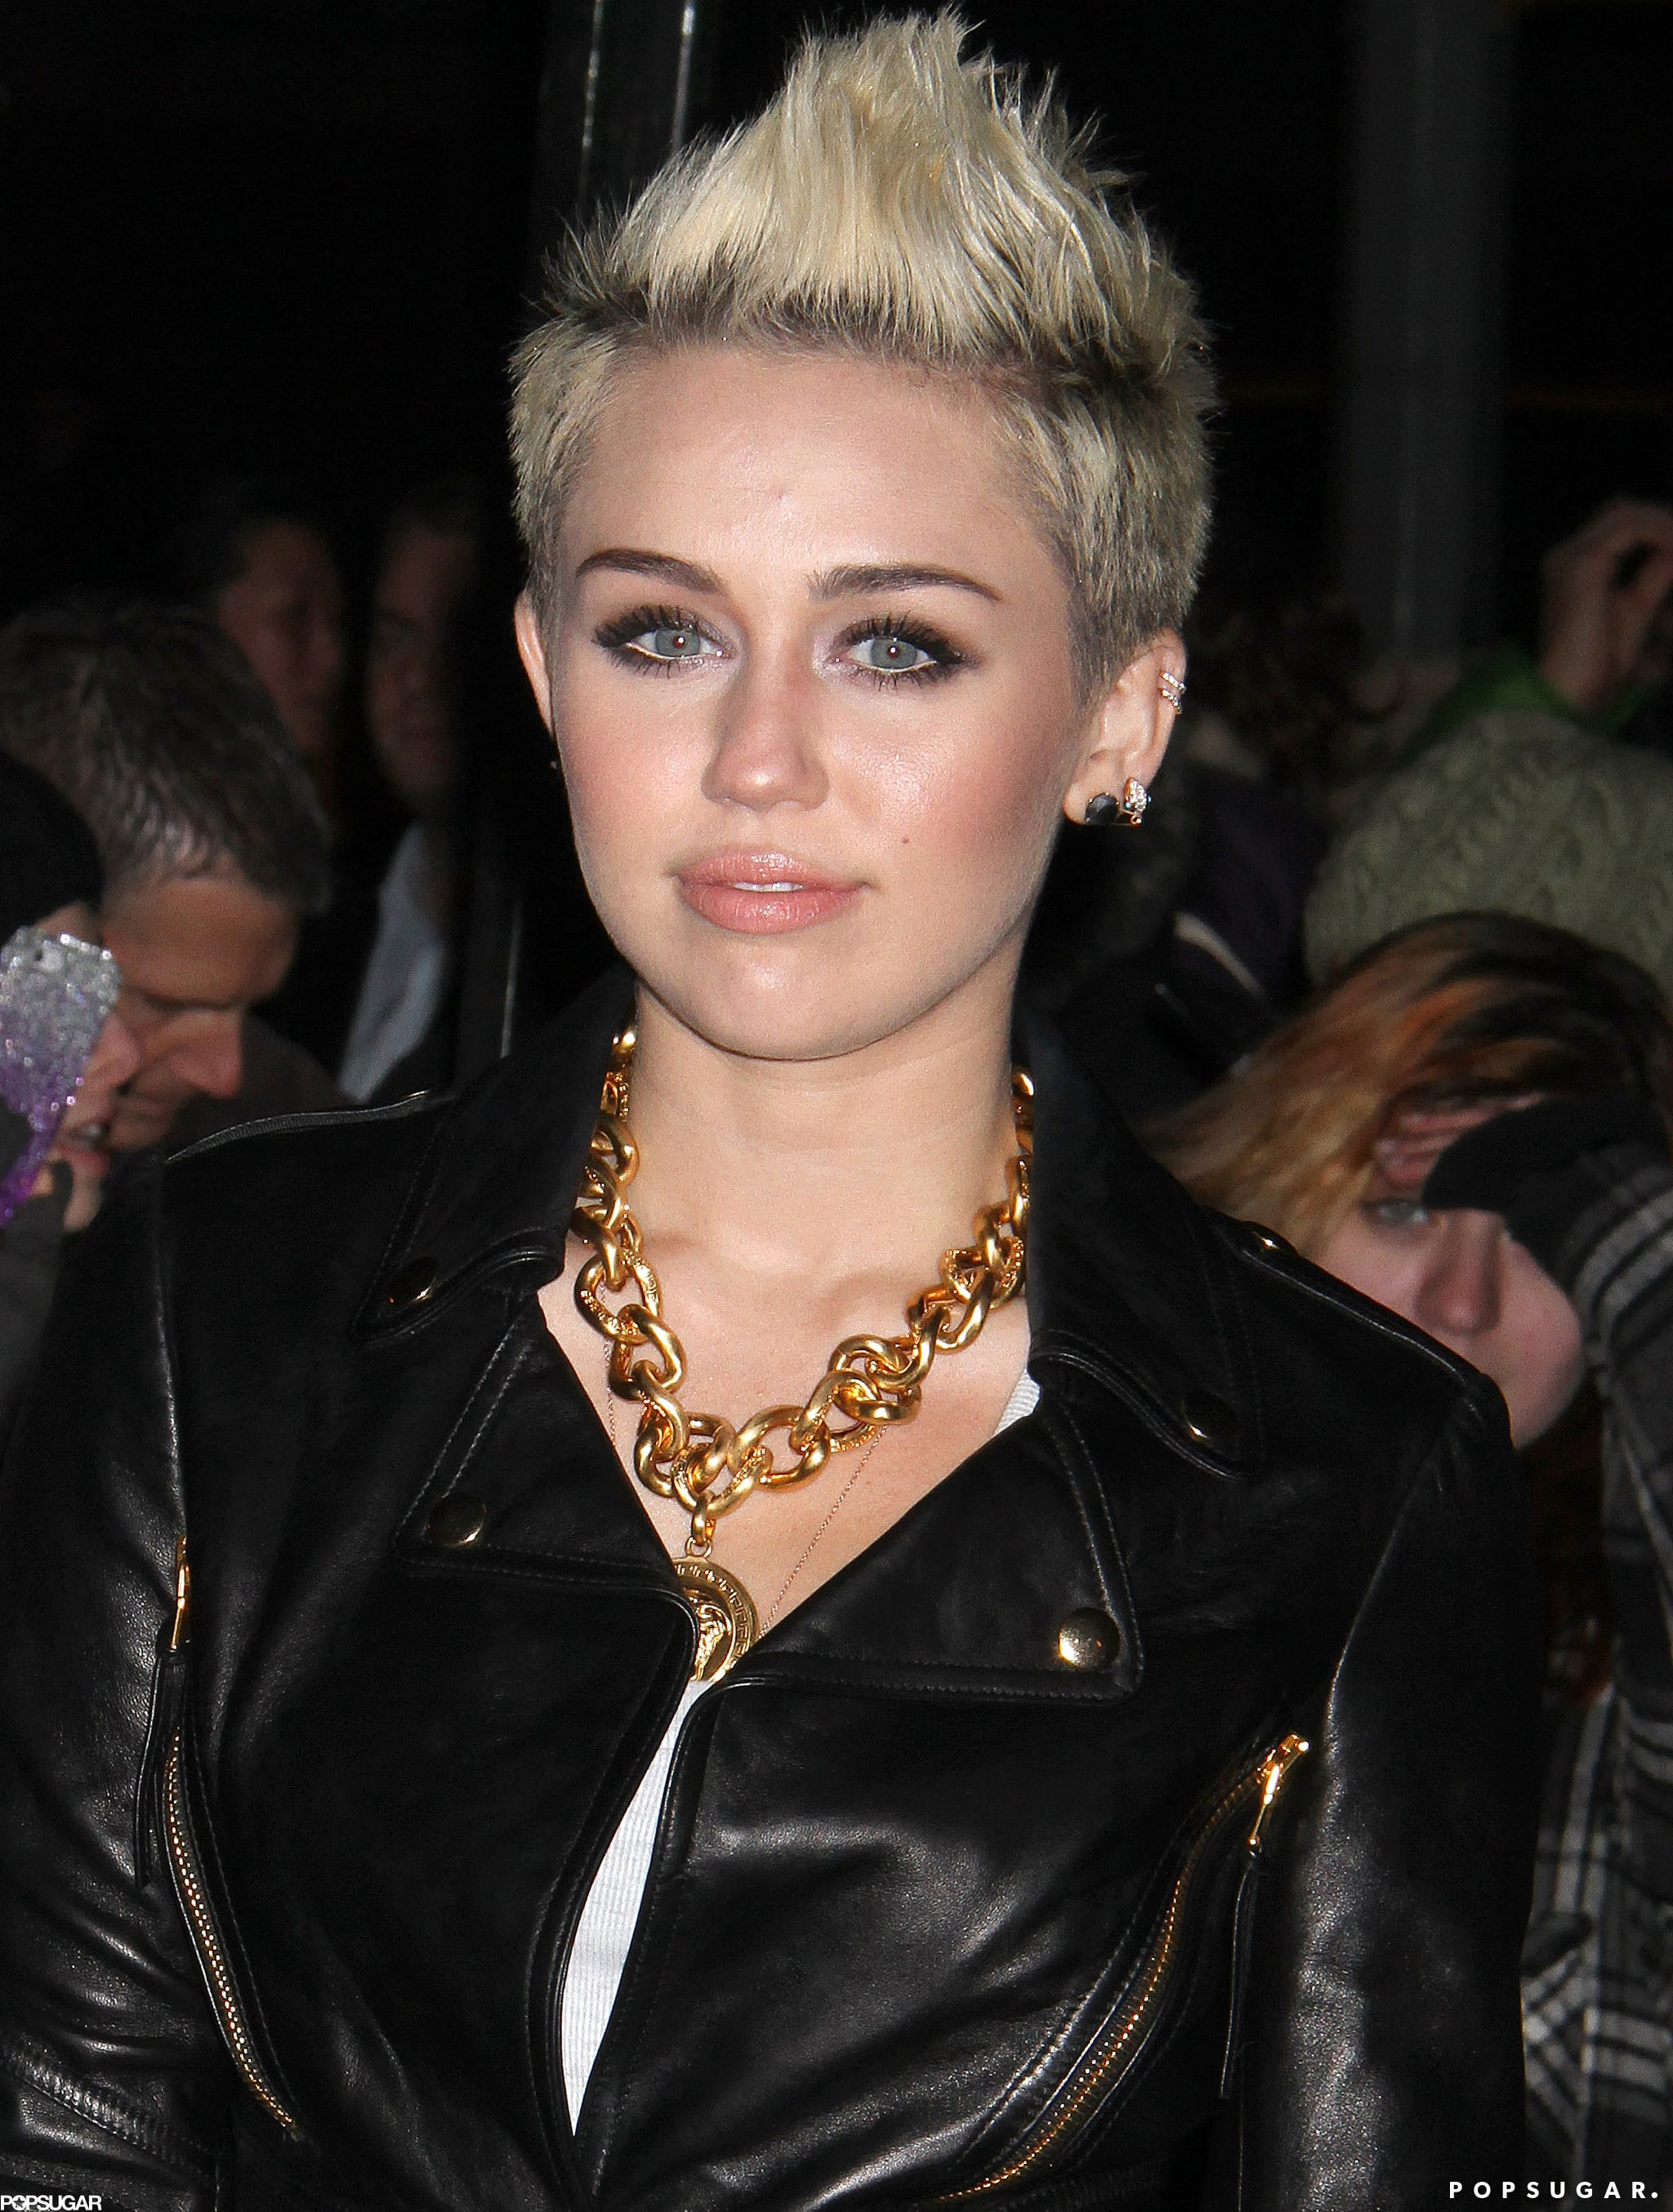 Miley Gets Cute to Celebrate Her Cosmo Cover in NYC